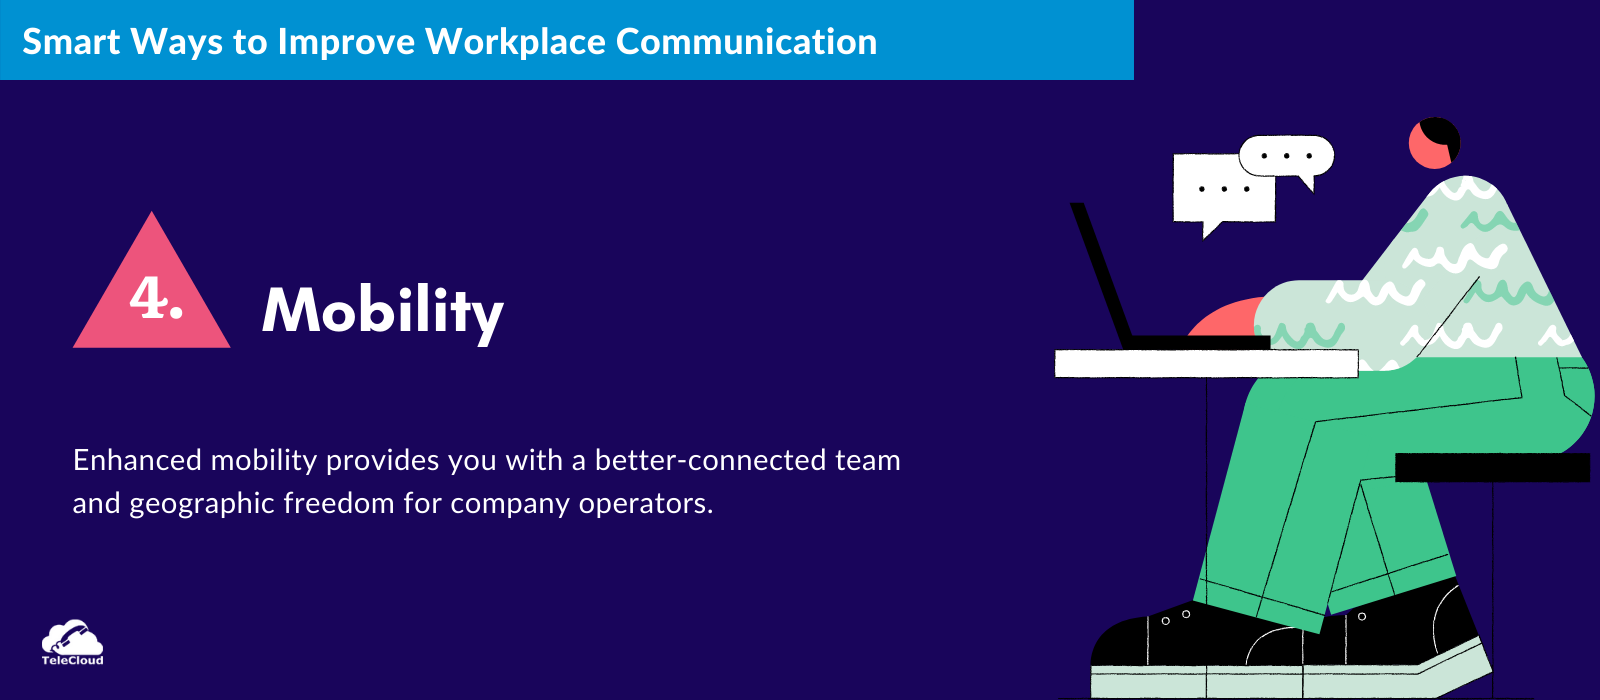 Mobility to Improve Workplace Communication - TeleCloud